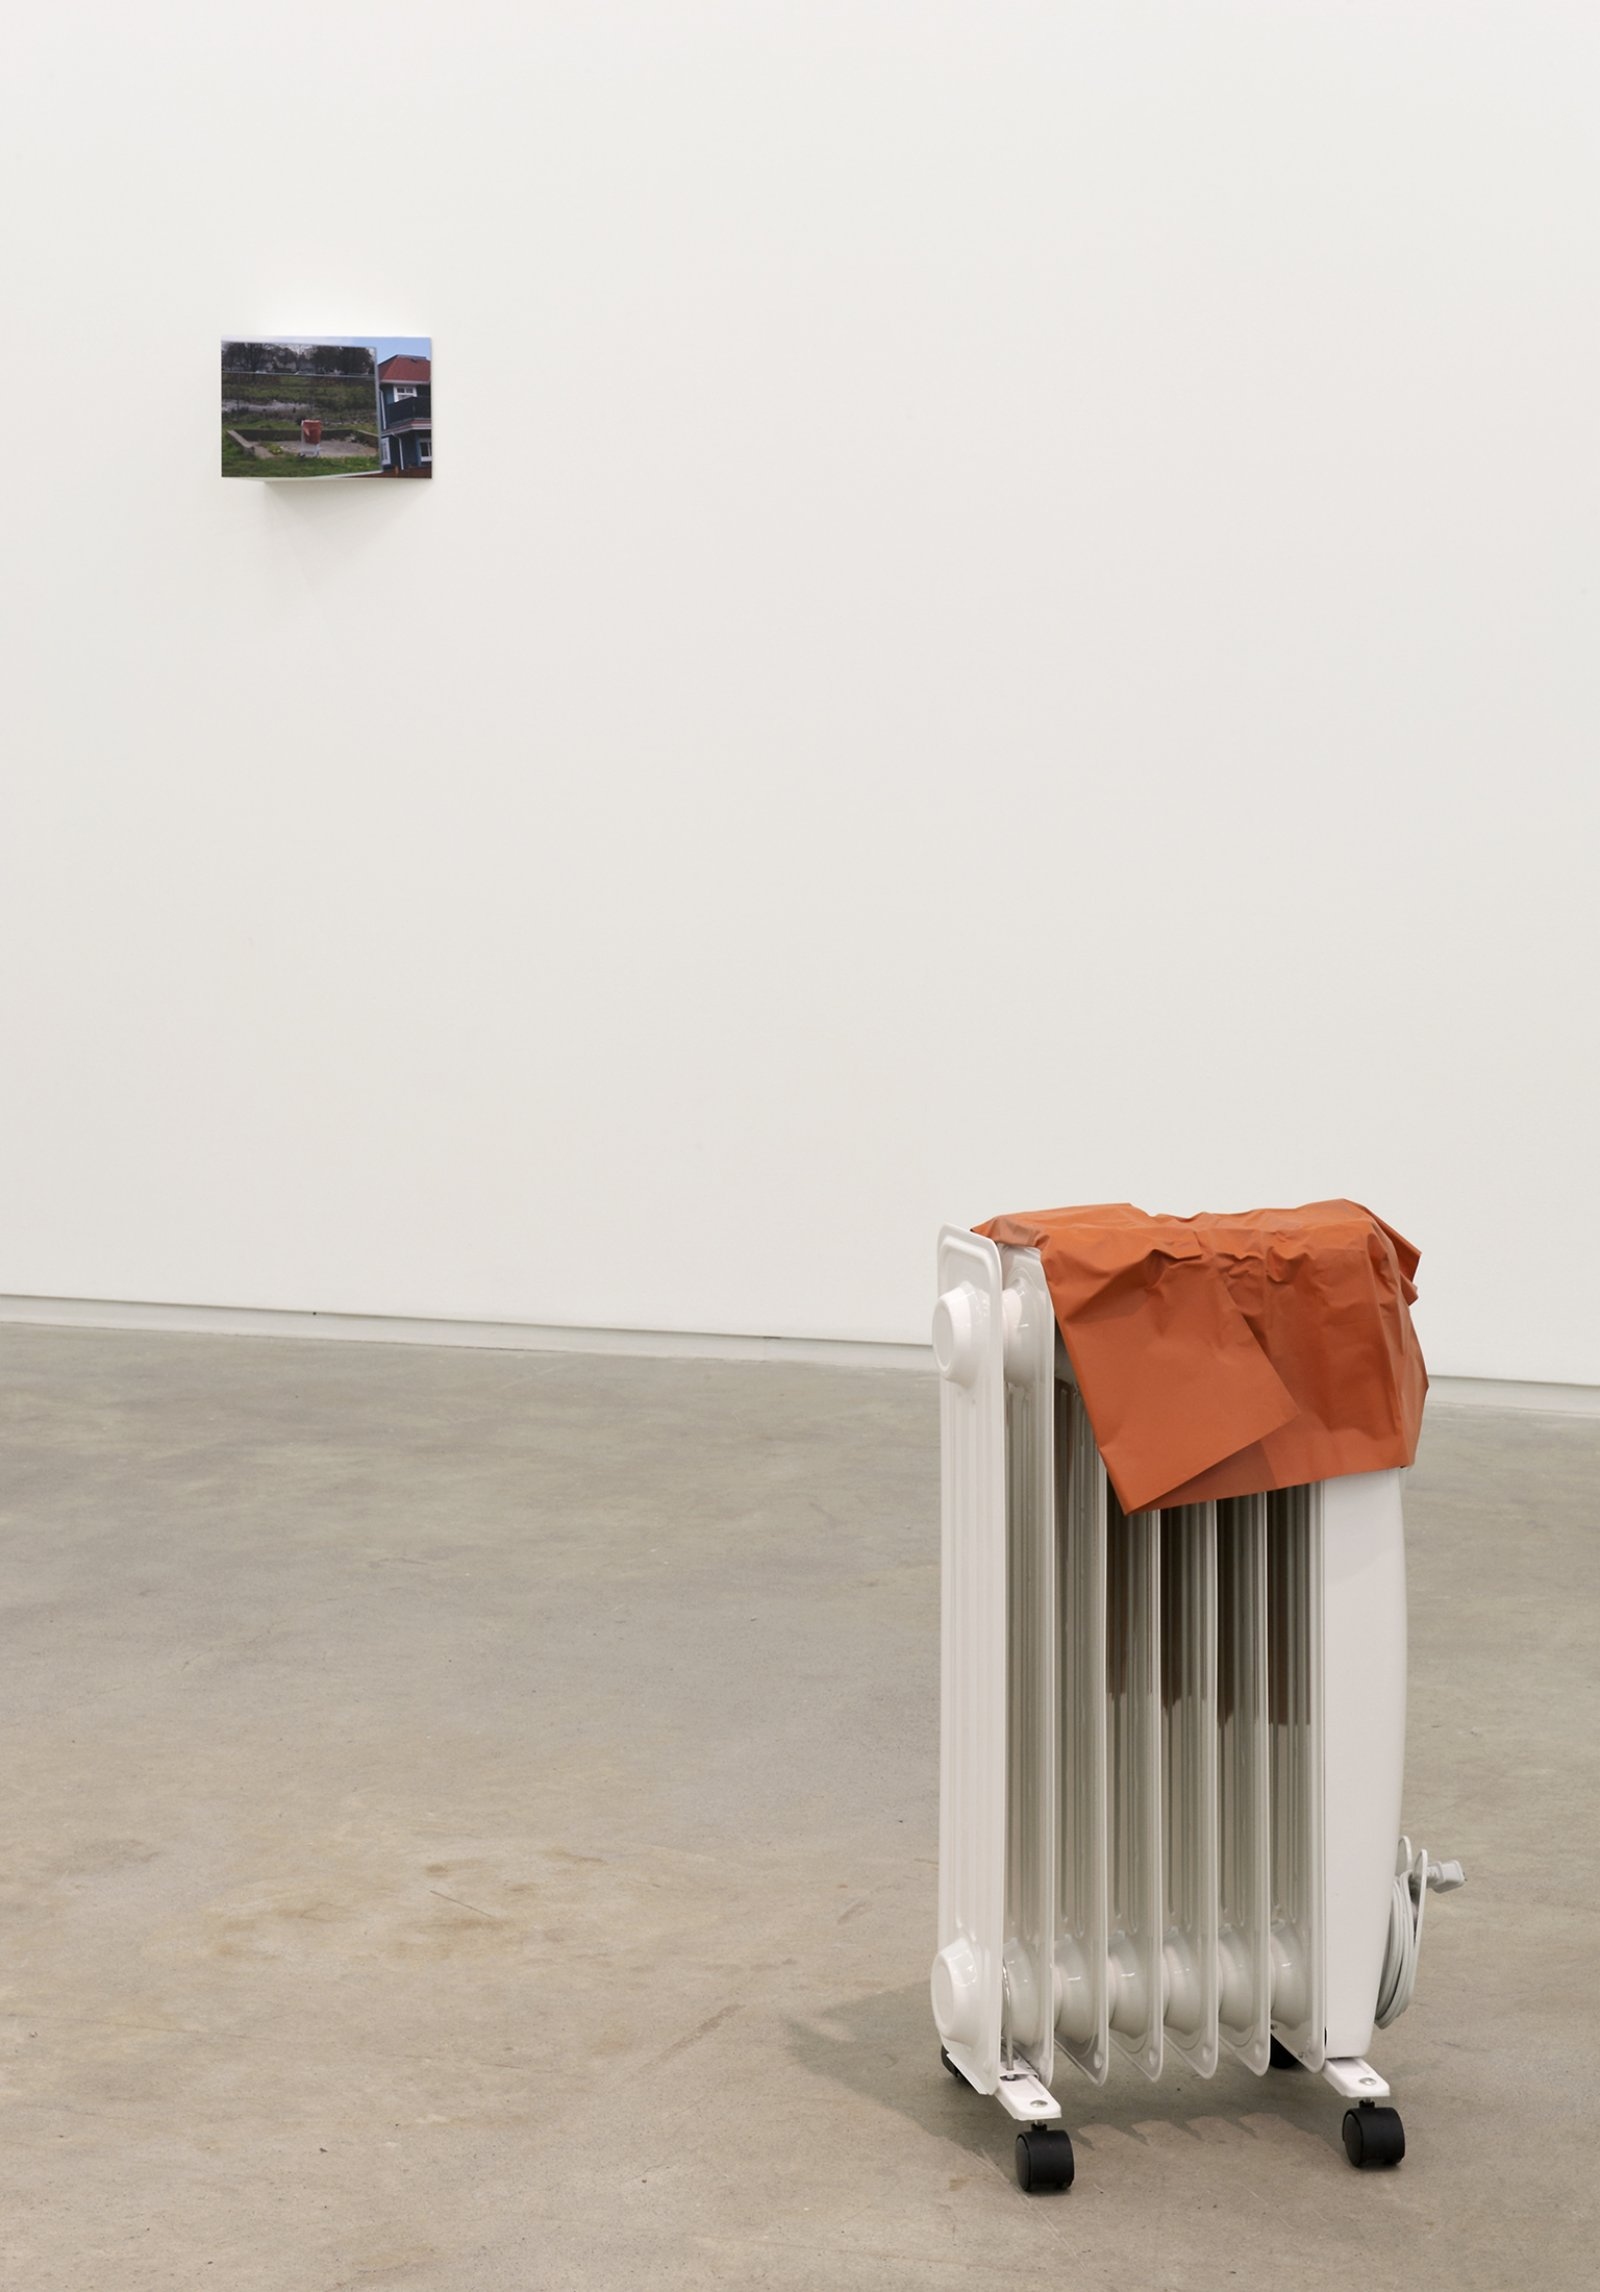 Judy Radul, Object Analysis Spectator Poem (Heater), 2012, painted copper, heater, colour photograph, heater: 26 x 15 x 11 in. (65 x 38 x 28 cm), photo: 8 x 11 x 5 in. (20 x 28 x 13 cm)  by Judy Radul